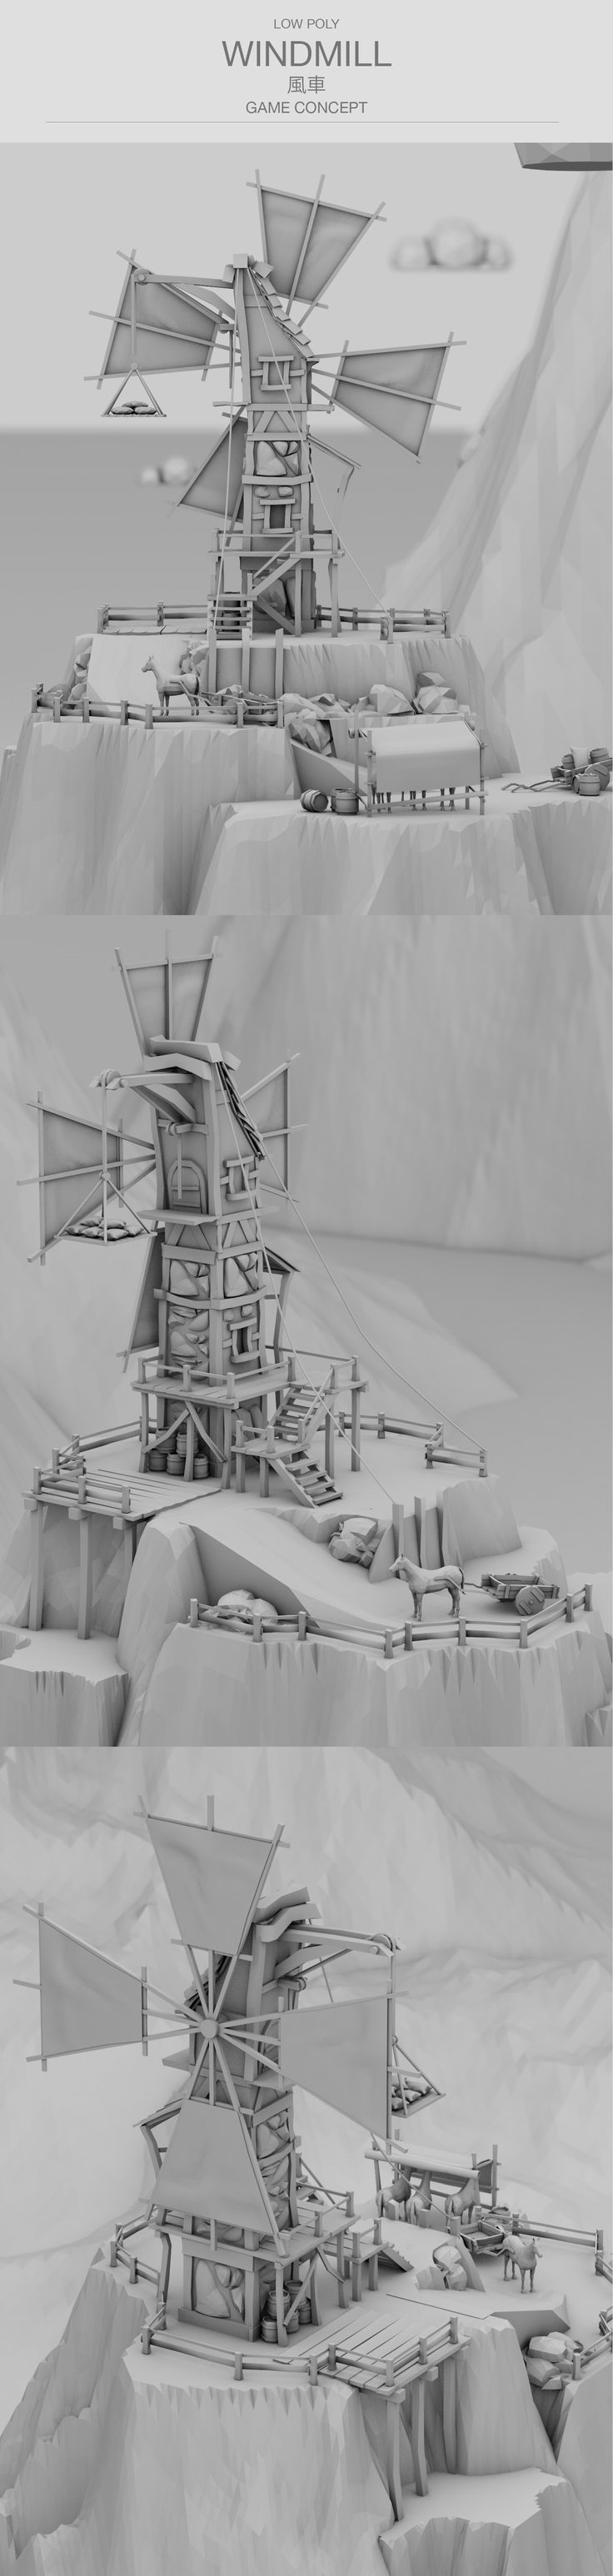 Low poly / Medieval Windmill / Game environment on Behance